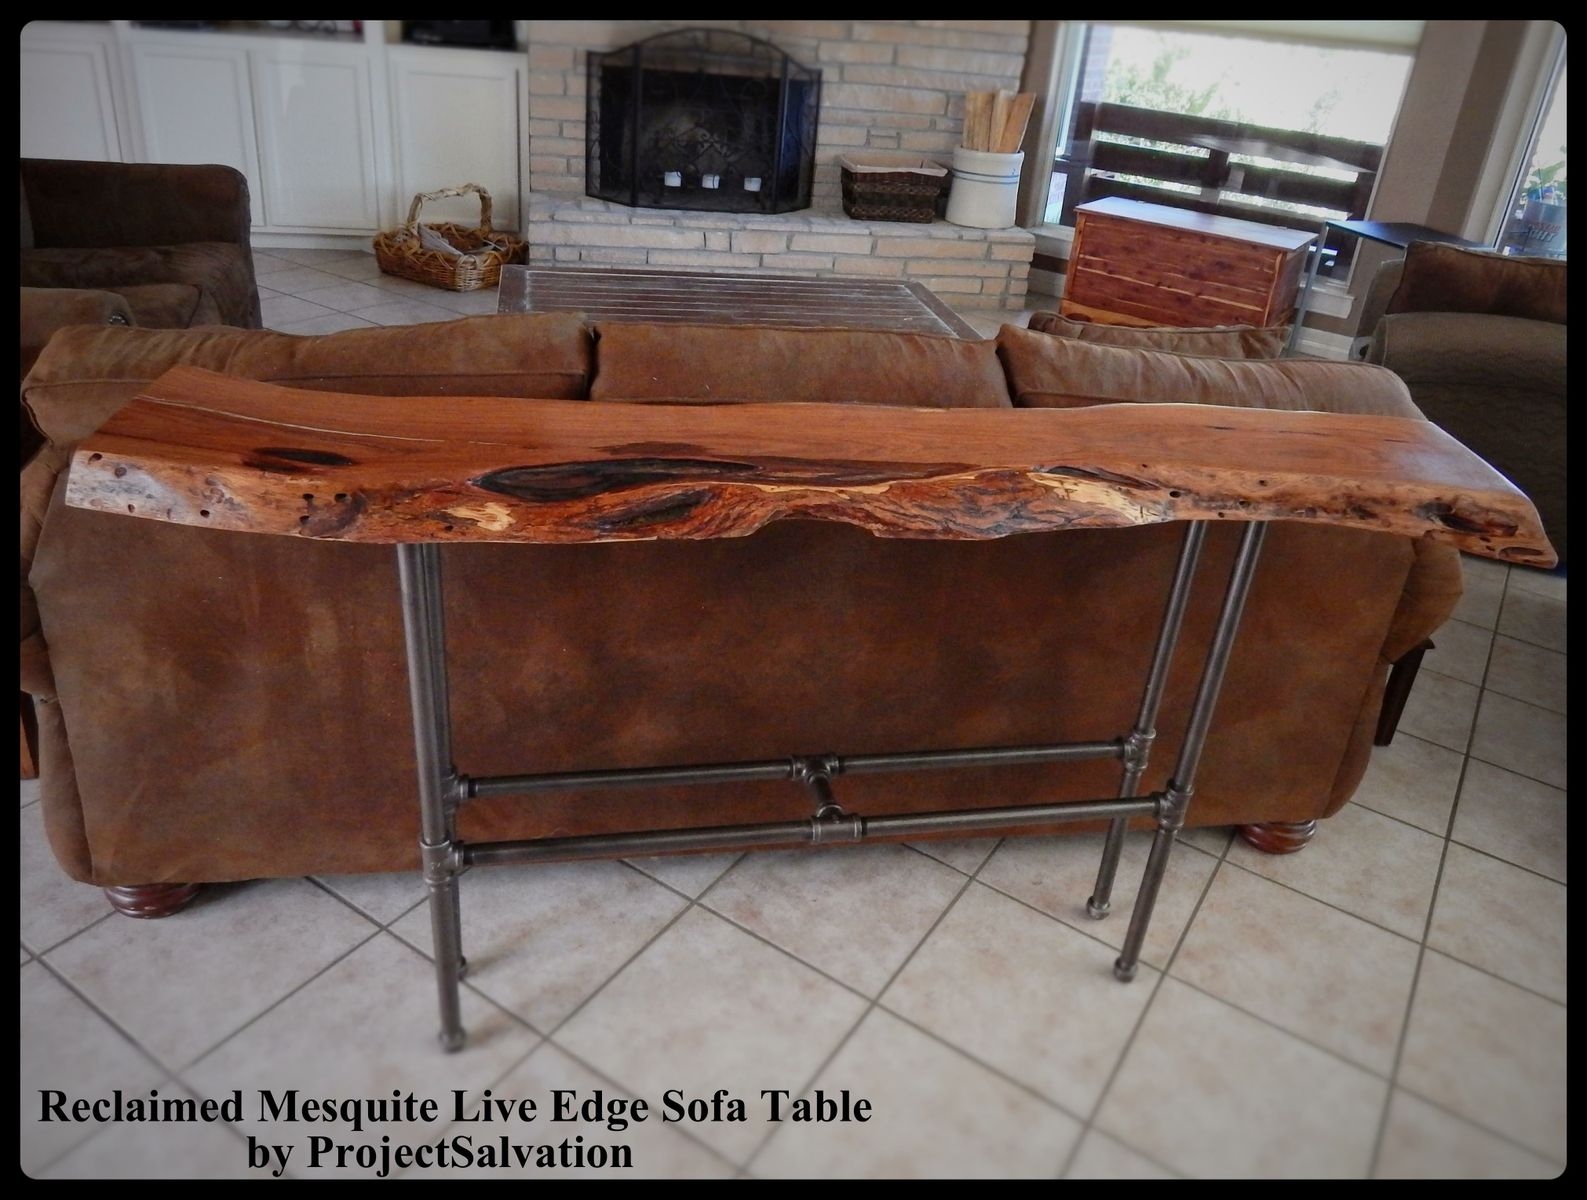 Buy A Hand Crafted Live Edge Mesquite Sofa Table Made To Order From Project Salvation